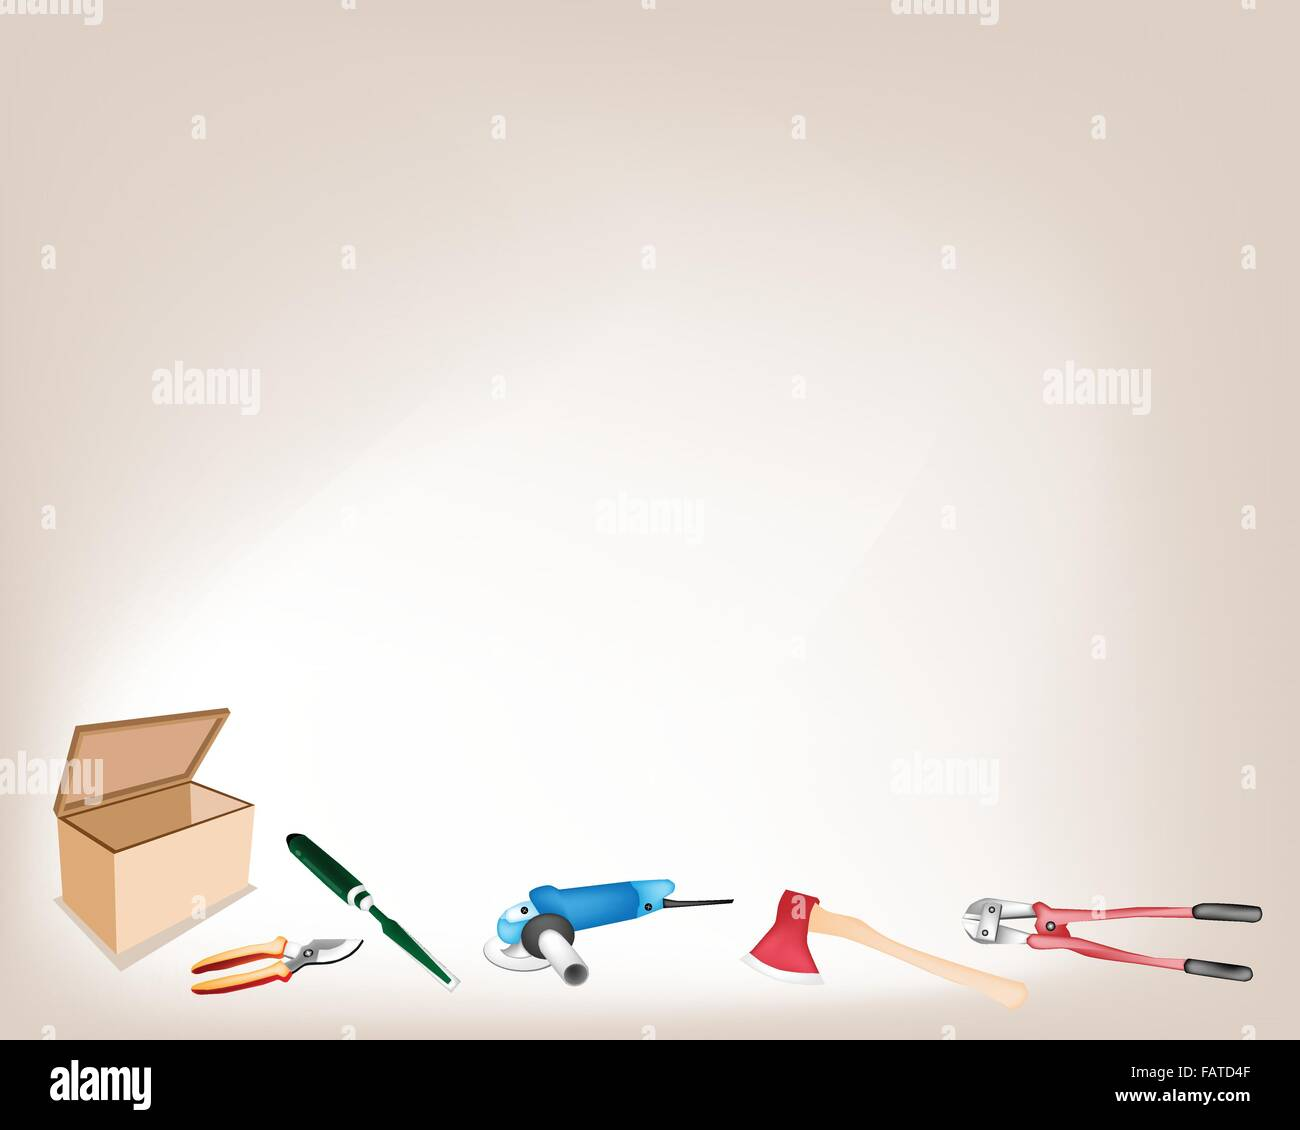 Illustration Collection of Carpenter Craft Tools, Axe, Rasp, Electric Angle Grinder, Loppers and Pruners Isolated - Stock Vector